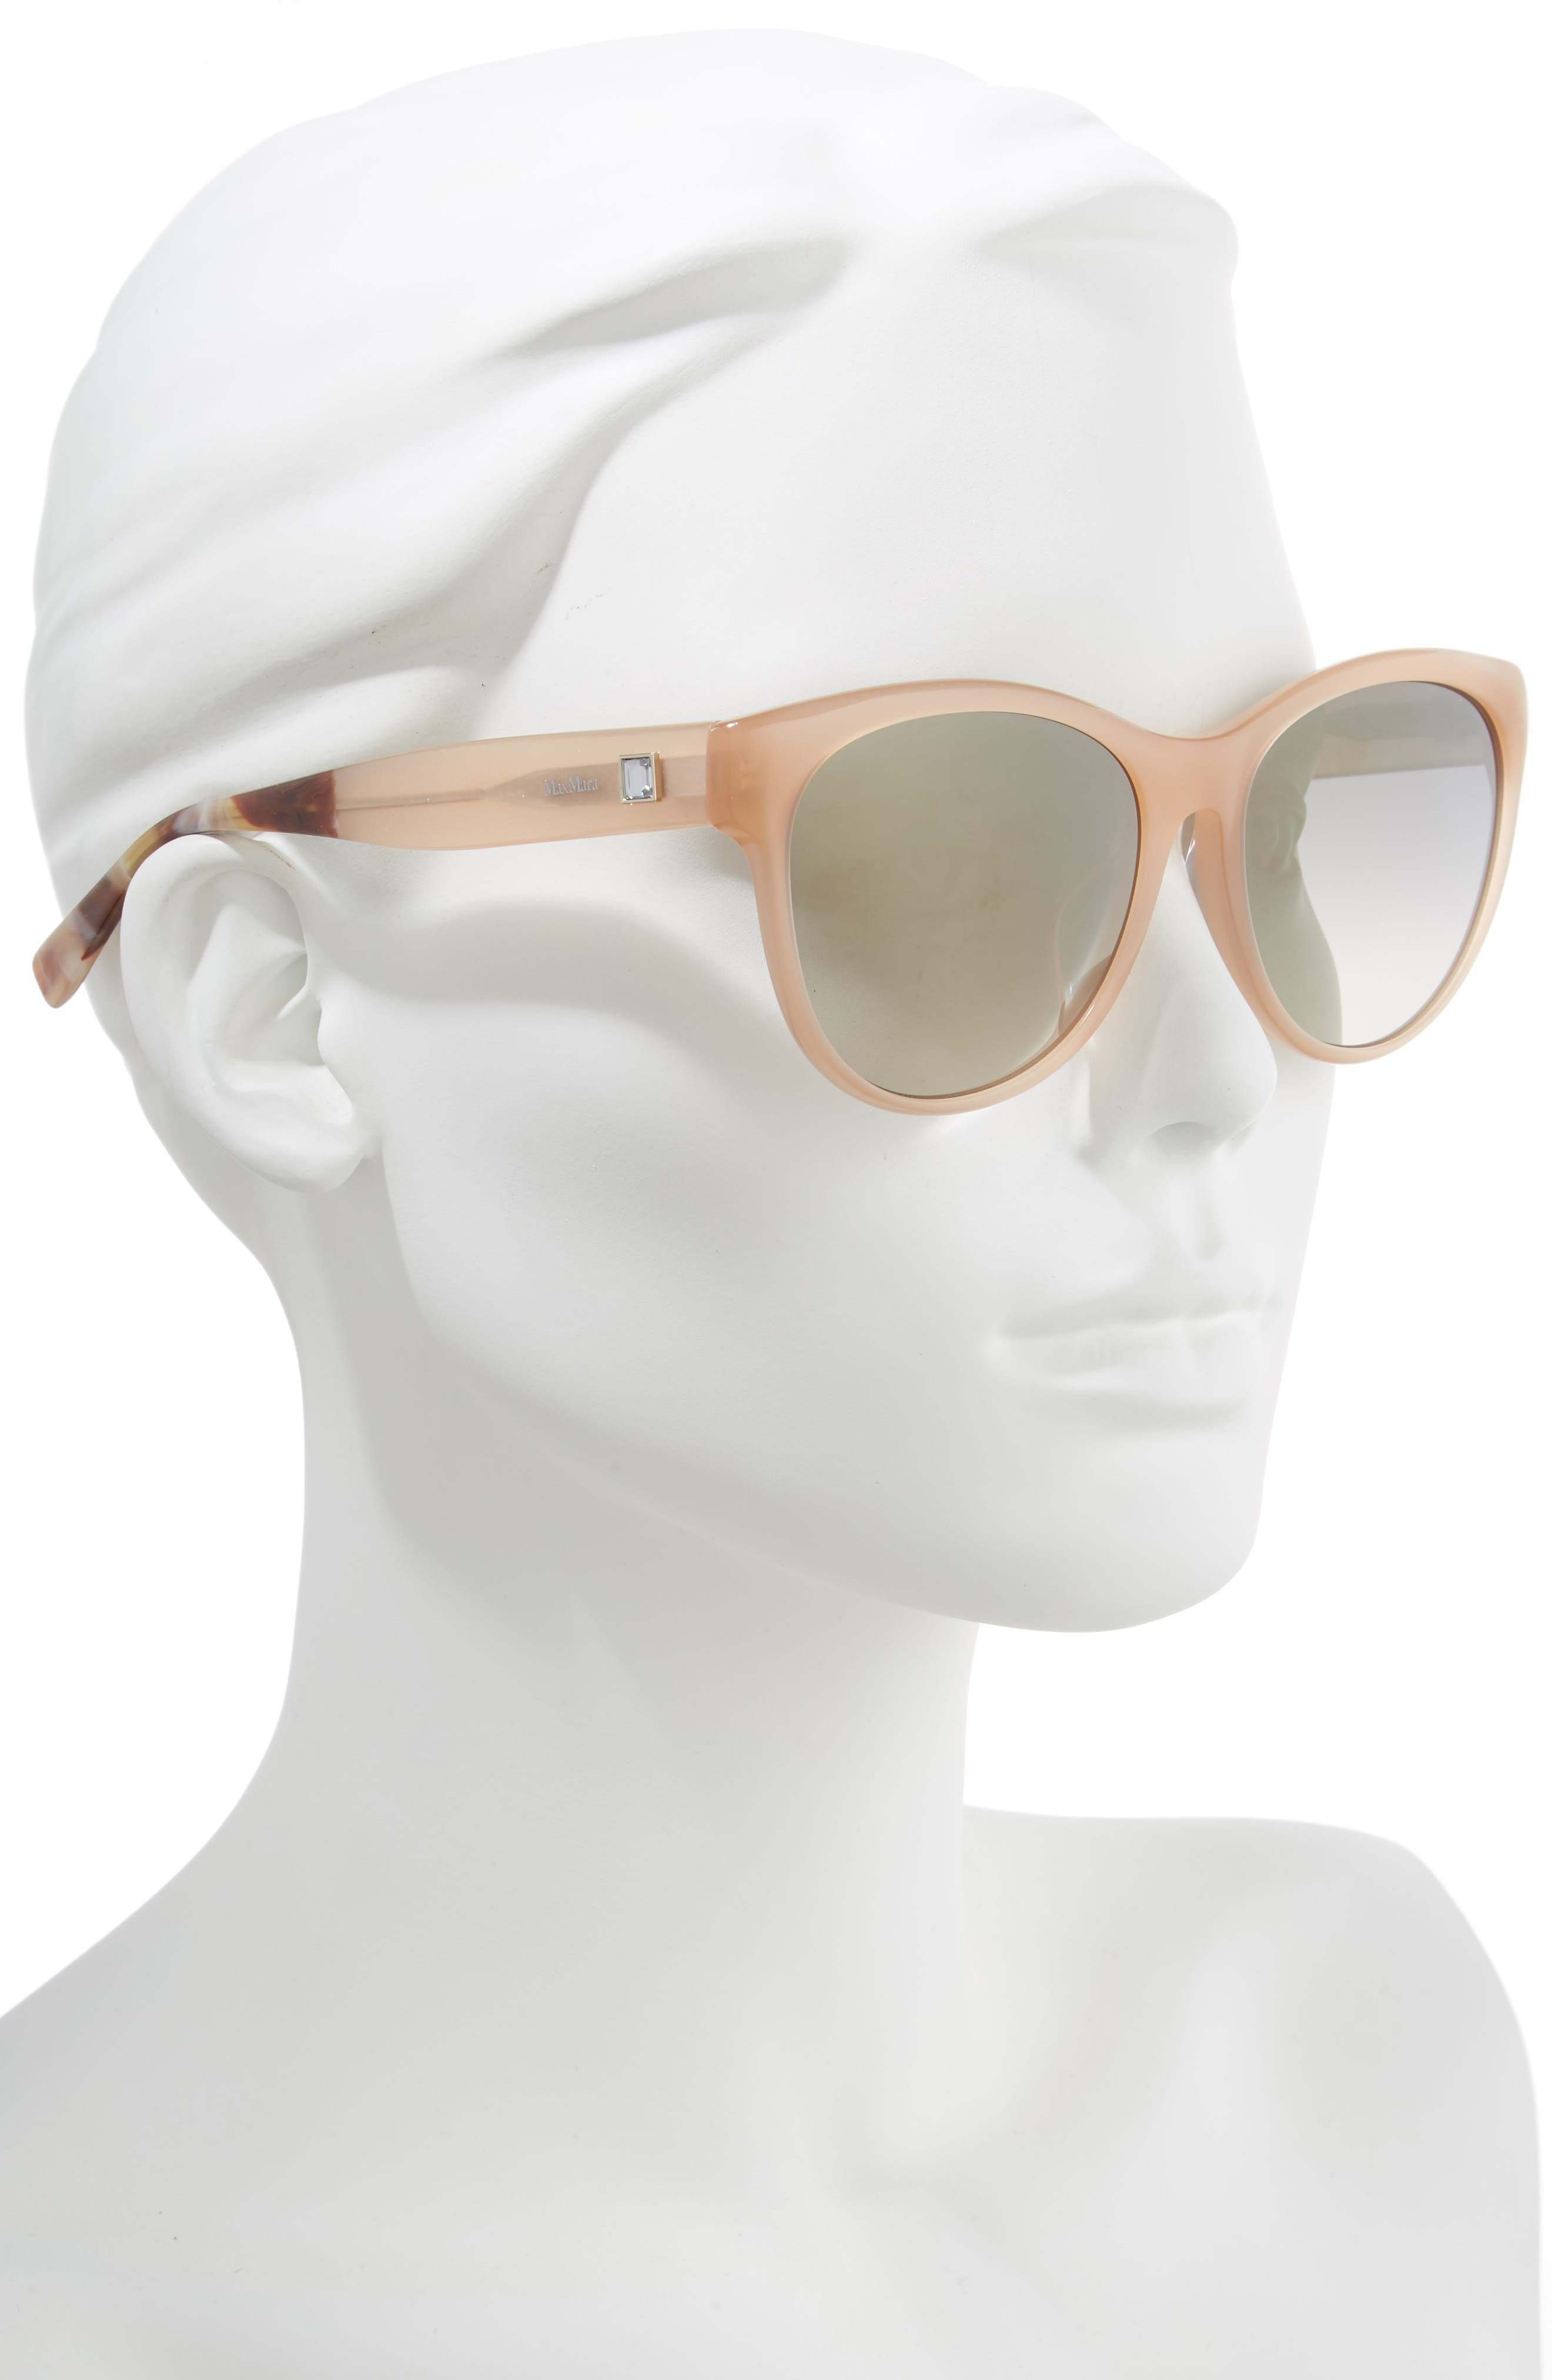 Leisure 57mm Special Fit Sunglasses,                             Alternate thumbnail 2, color,                             250